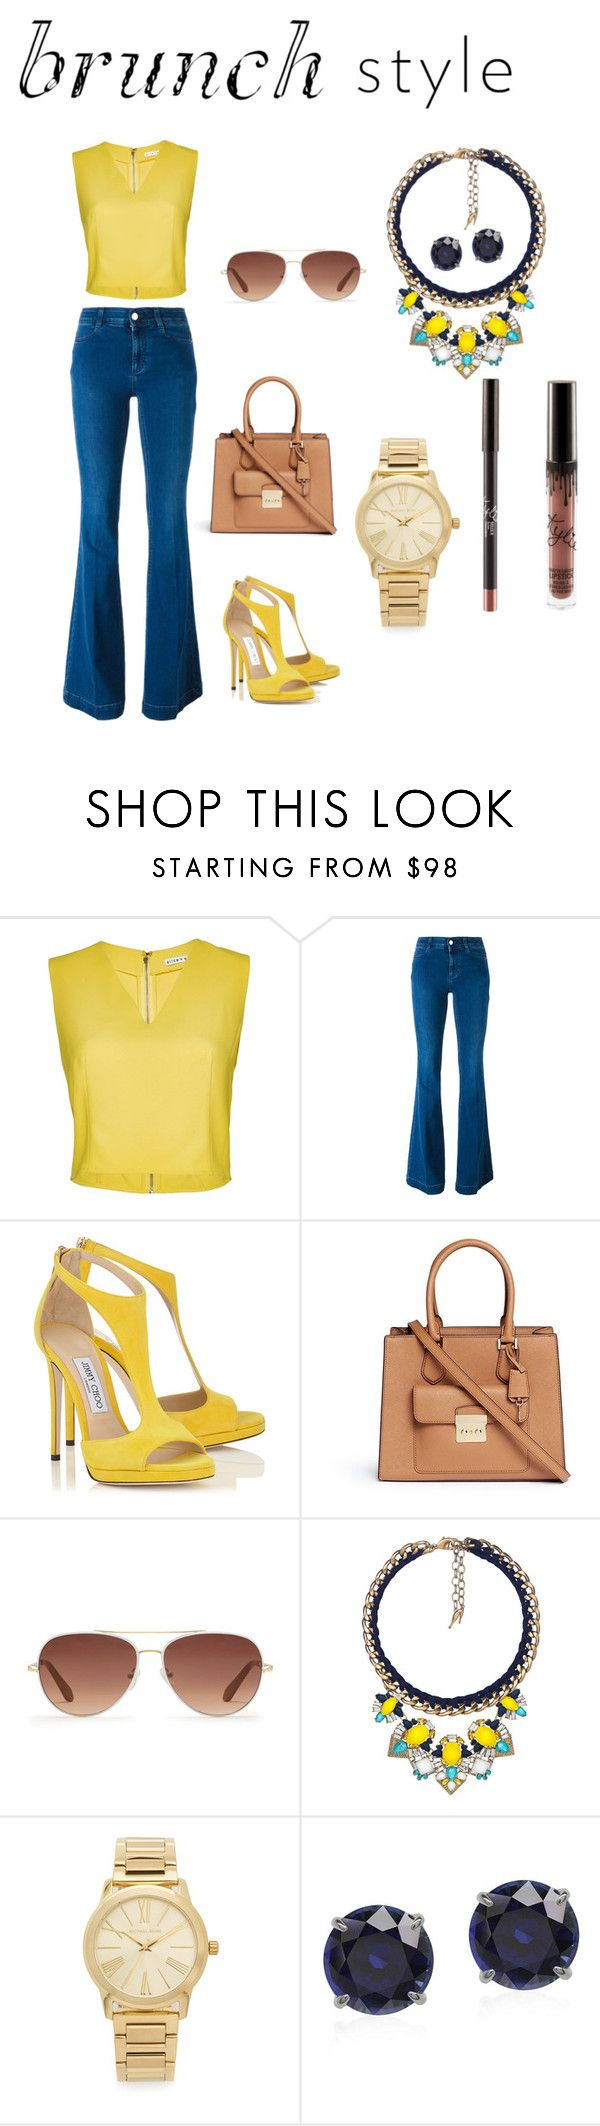 Ya sabes que usar para tu special brunch? by nmartinez0610 on Polyvore featuring Alice + Olivia, STELLA McCARTNEY, Michael Kors, Chloe + Isabel and Stella & Dot